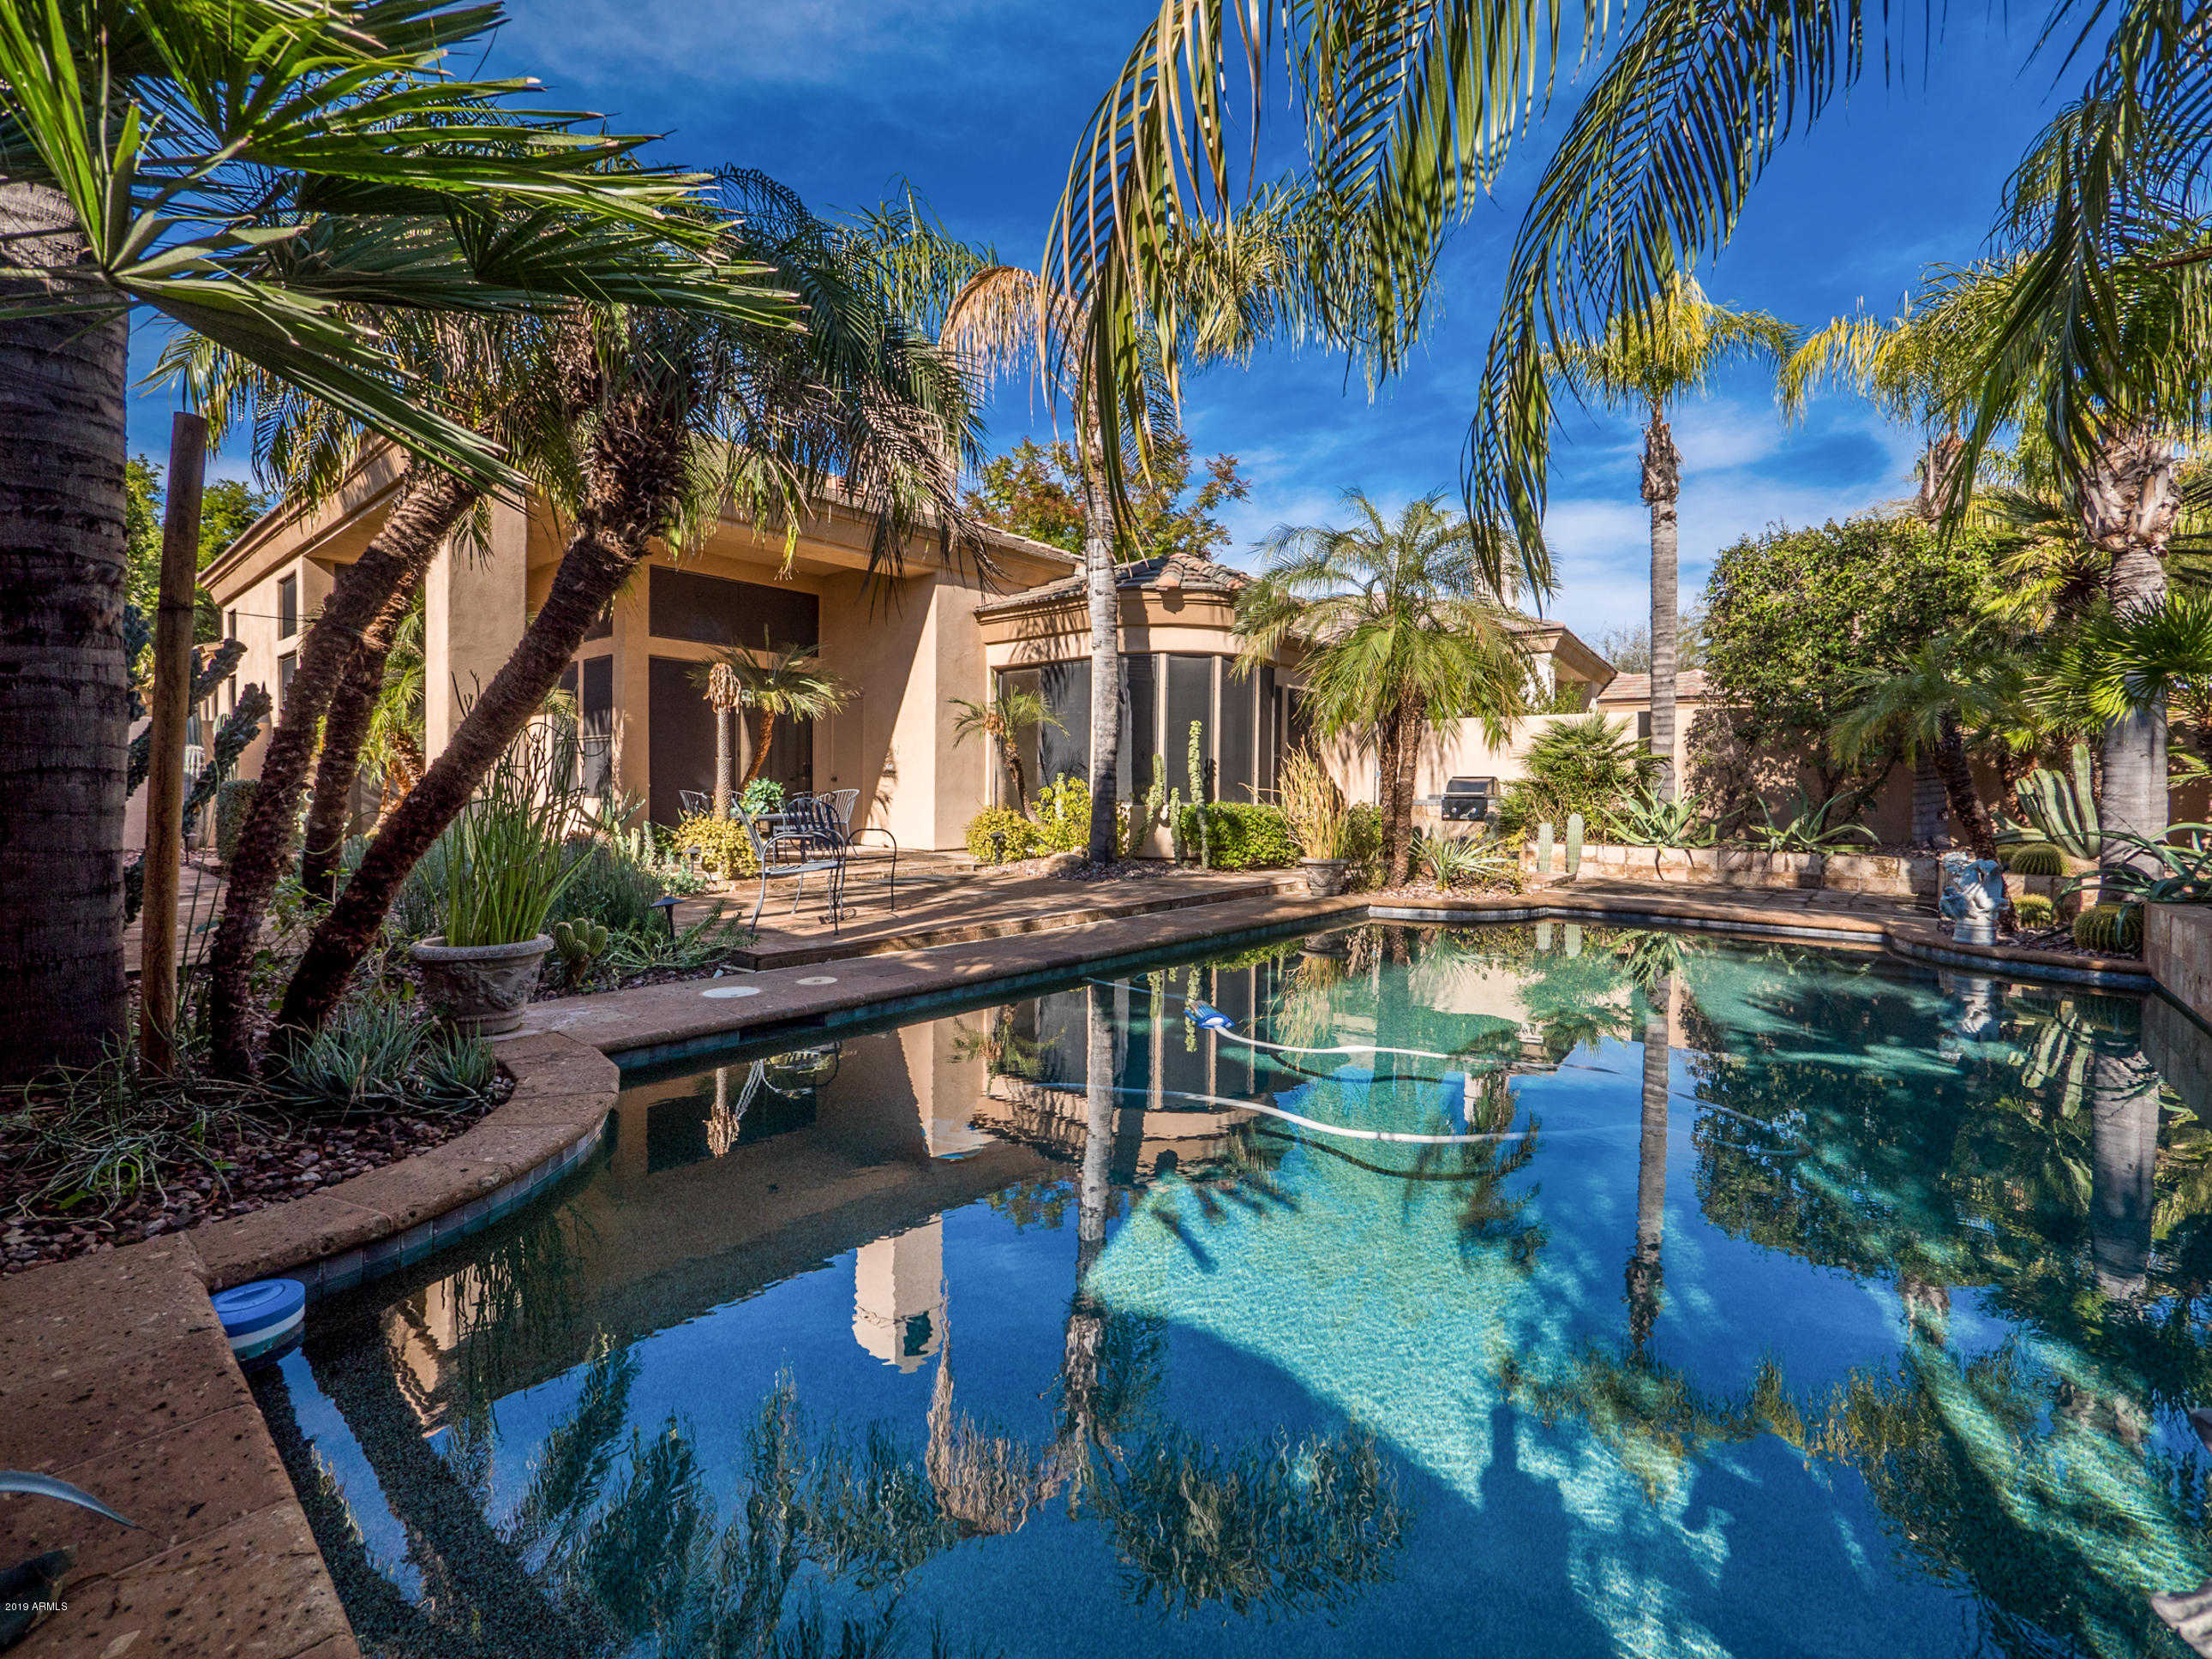 $849,000 - 2Br/2Ba - Home for Sale in Gainey Ranch, Scottsdale